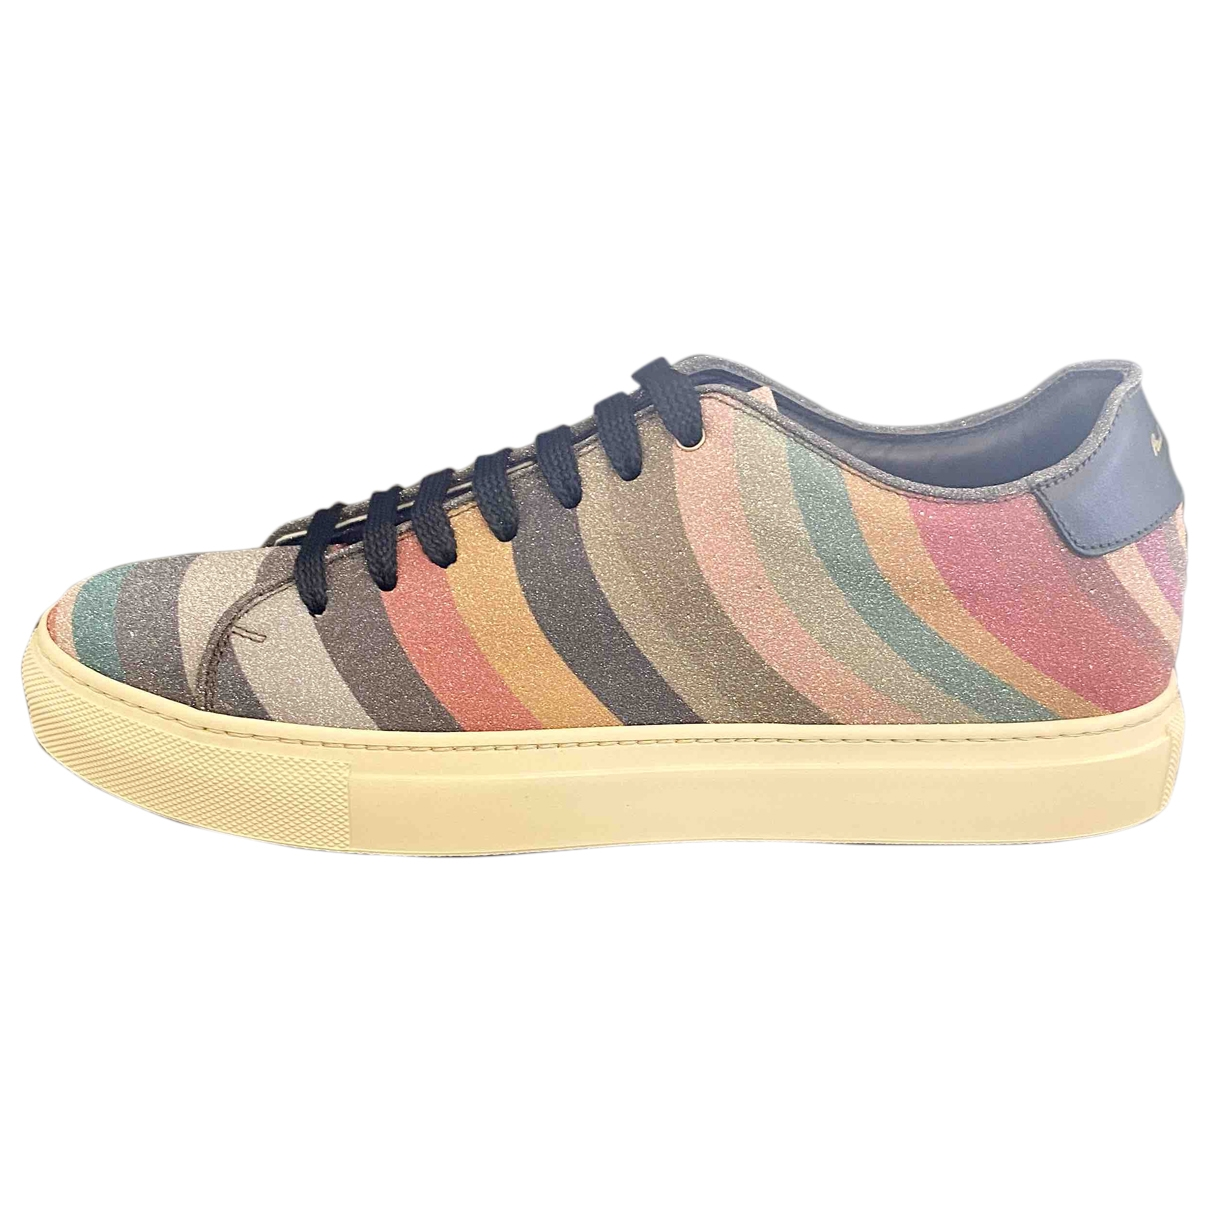 Paul Smith \N Multicolour Leather Trainers for Women 41 EU